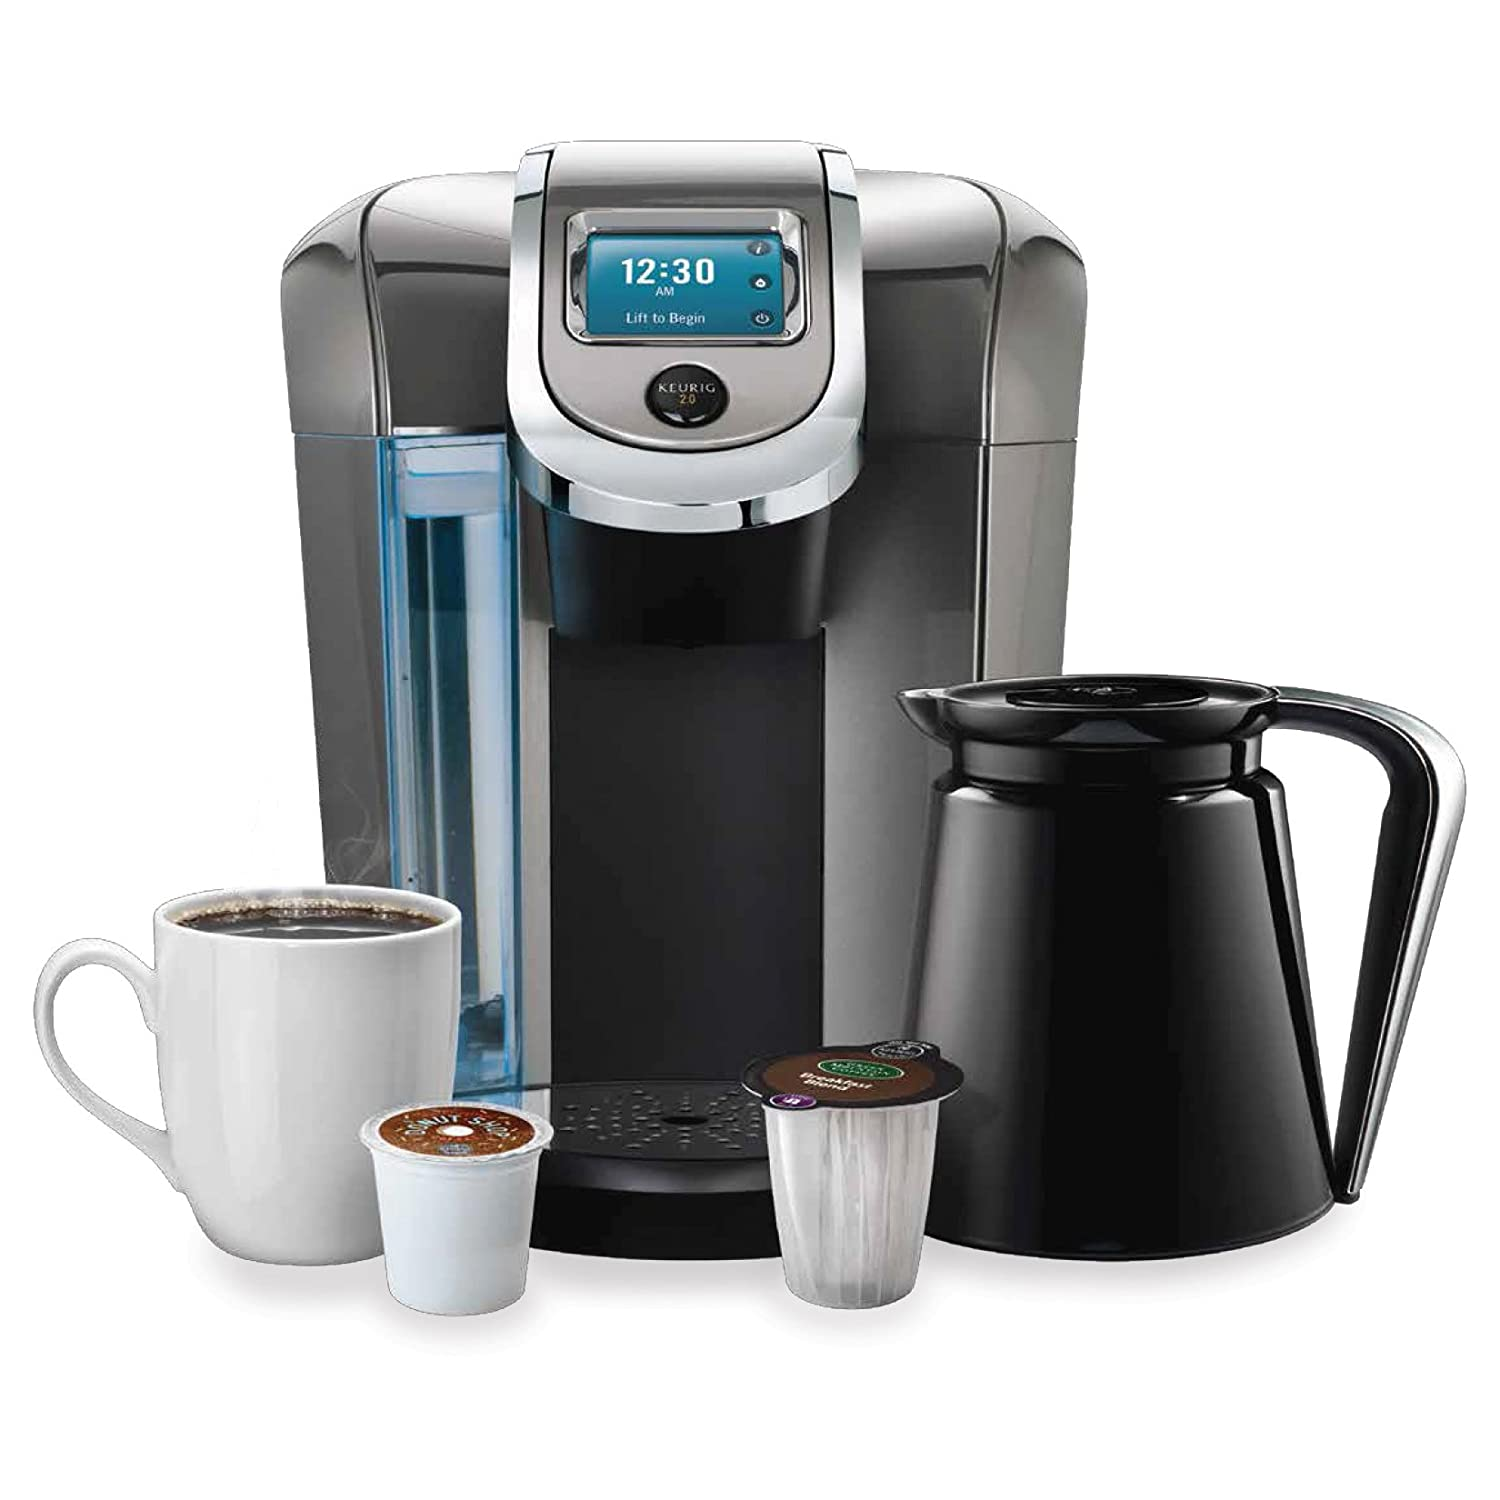 Keurig 2.0 Brewer